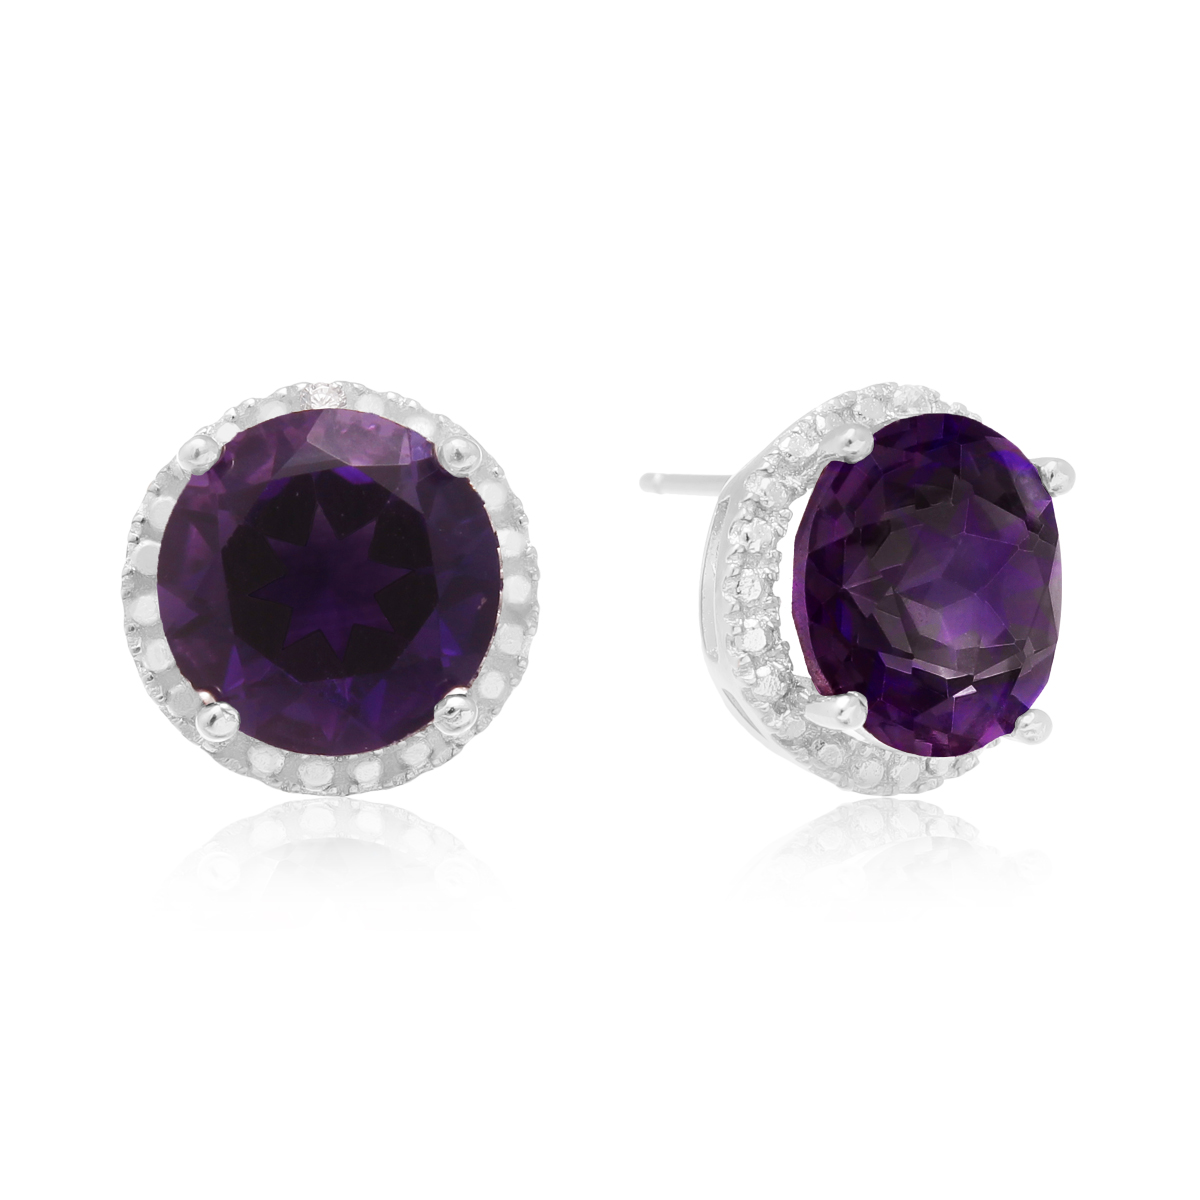 7 Ct Amethyst Halo Stud Earrings In Sterling Silver